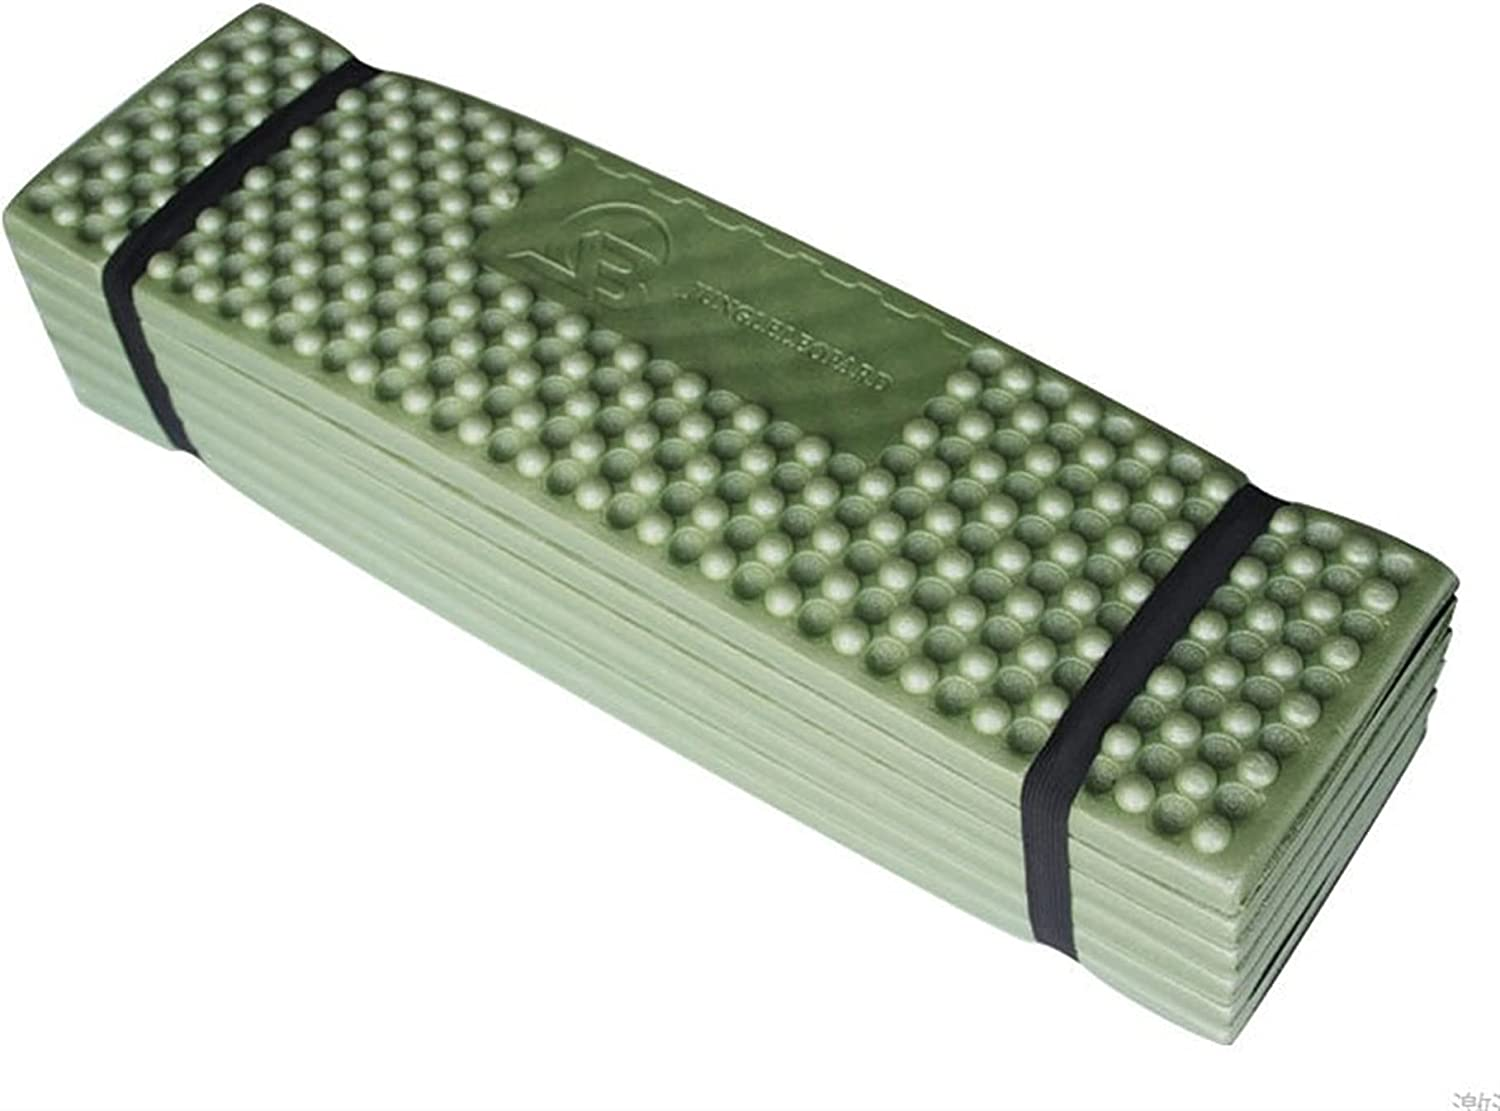 WWPP Spring new work one after another Camping Sleeping pad Lightweight SALENEW very popular! Suitable Ultralig f Most